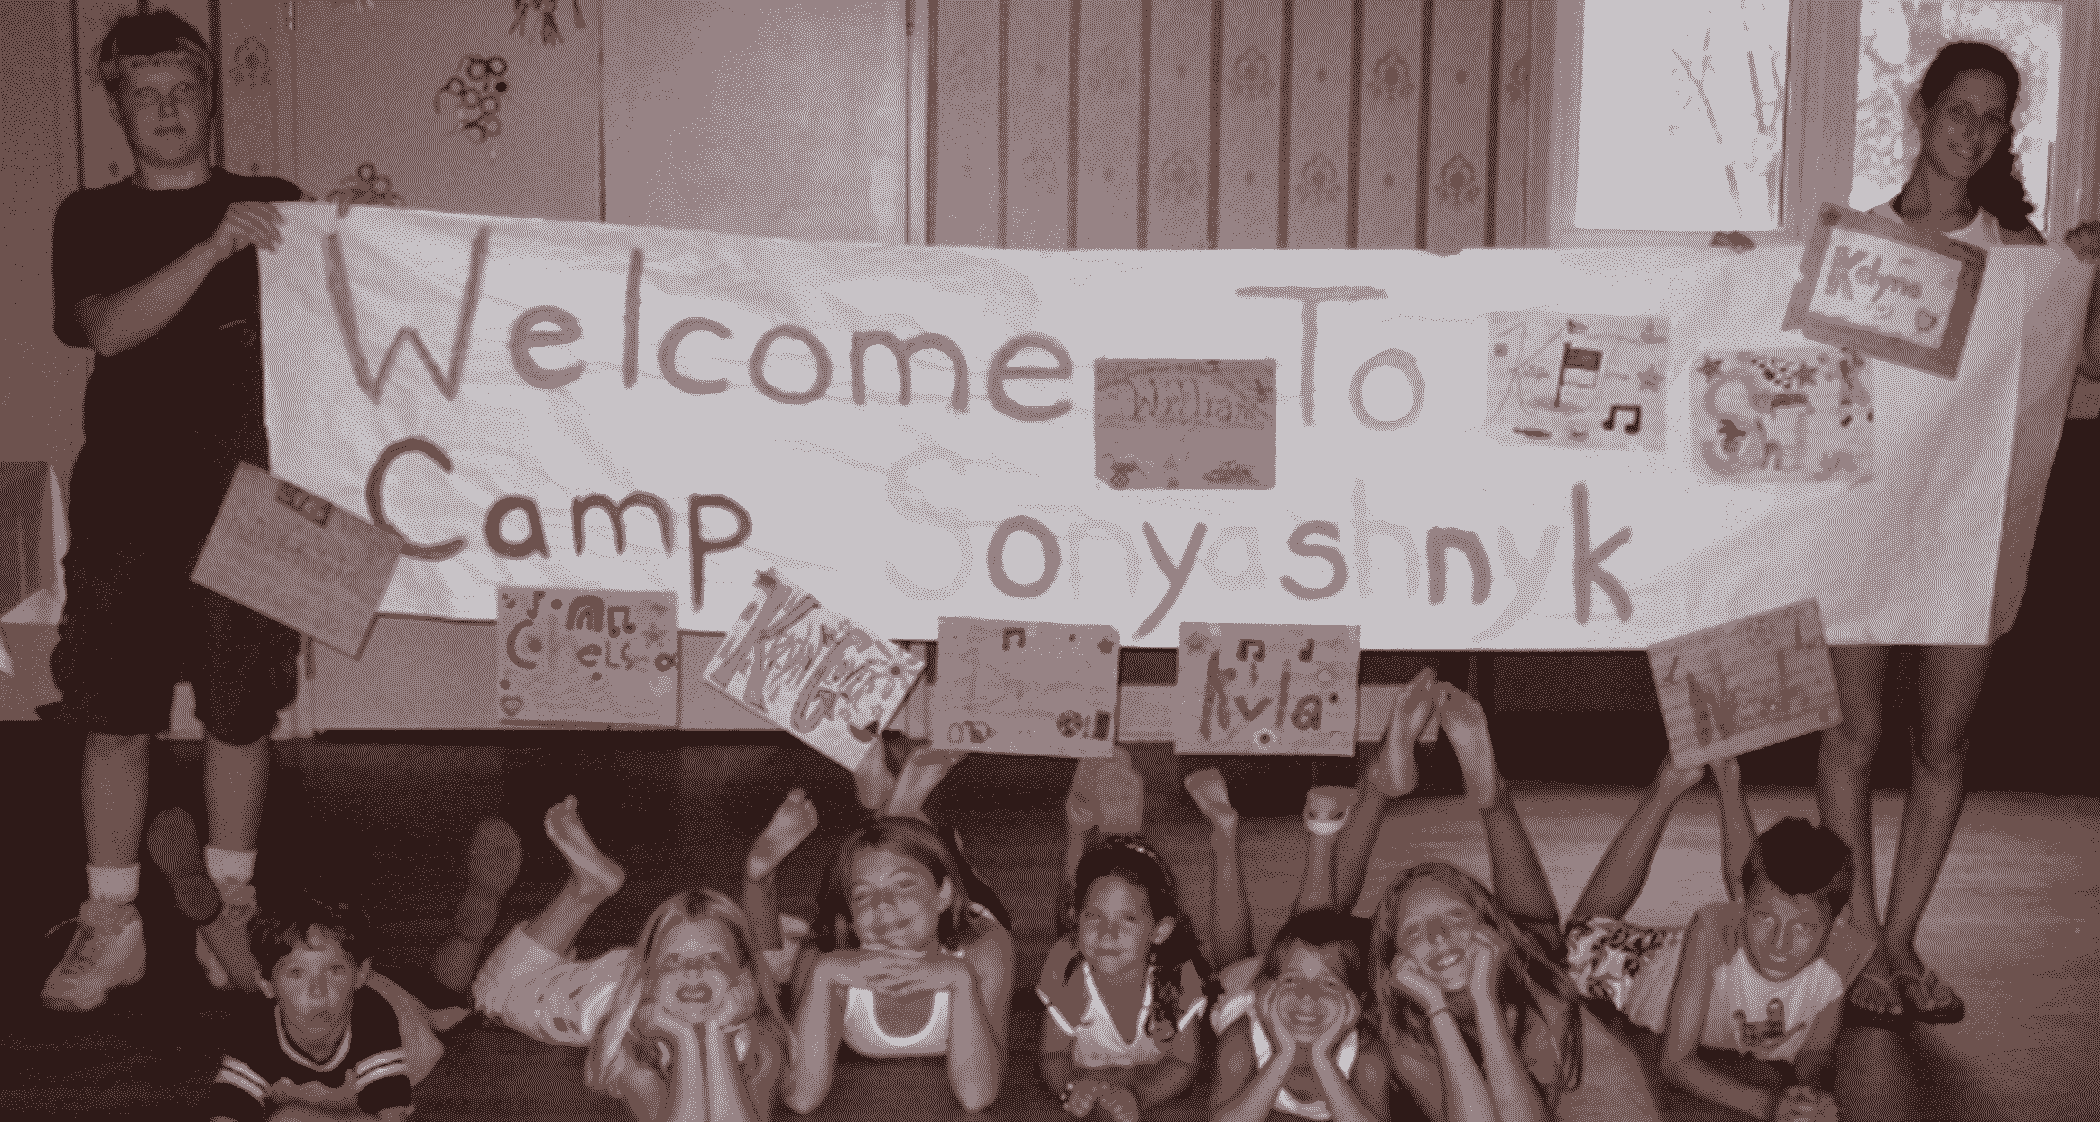 SONIASHNYK NATIONAL DAY CAMPS